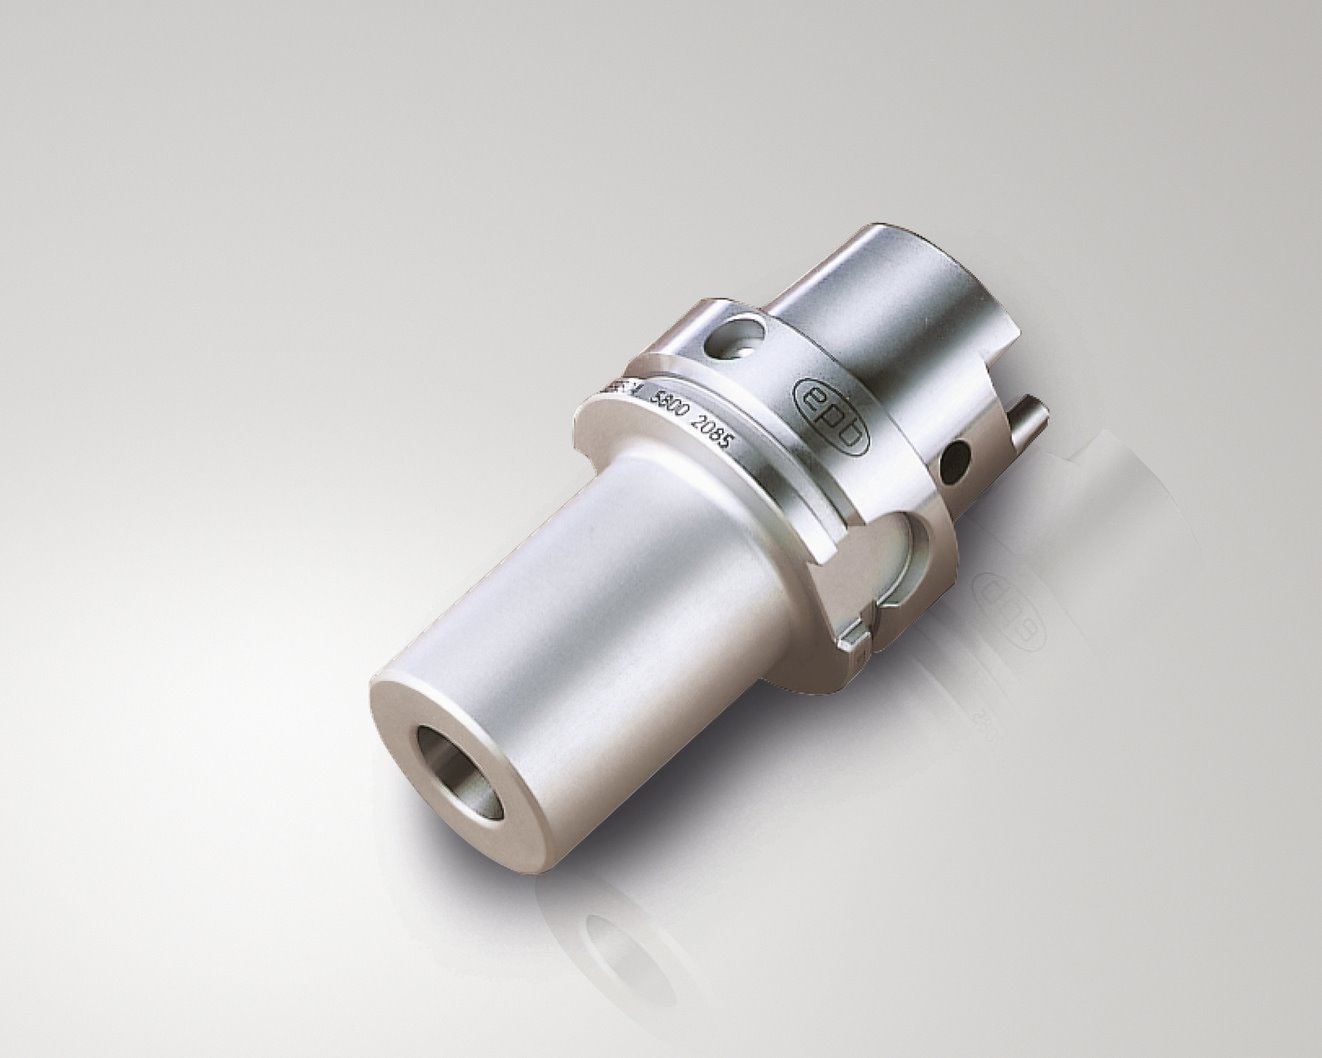 20035539_Shrinkfit_Holders-Cylindrical_With_Product_Background.tif